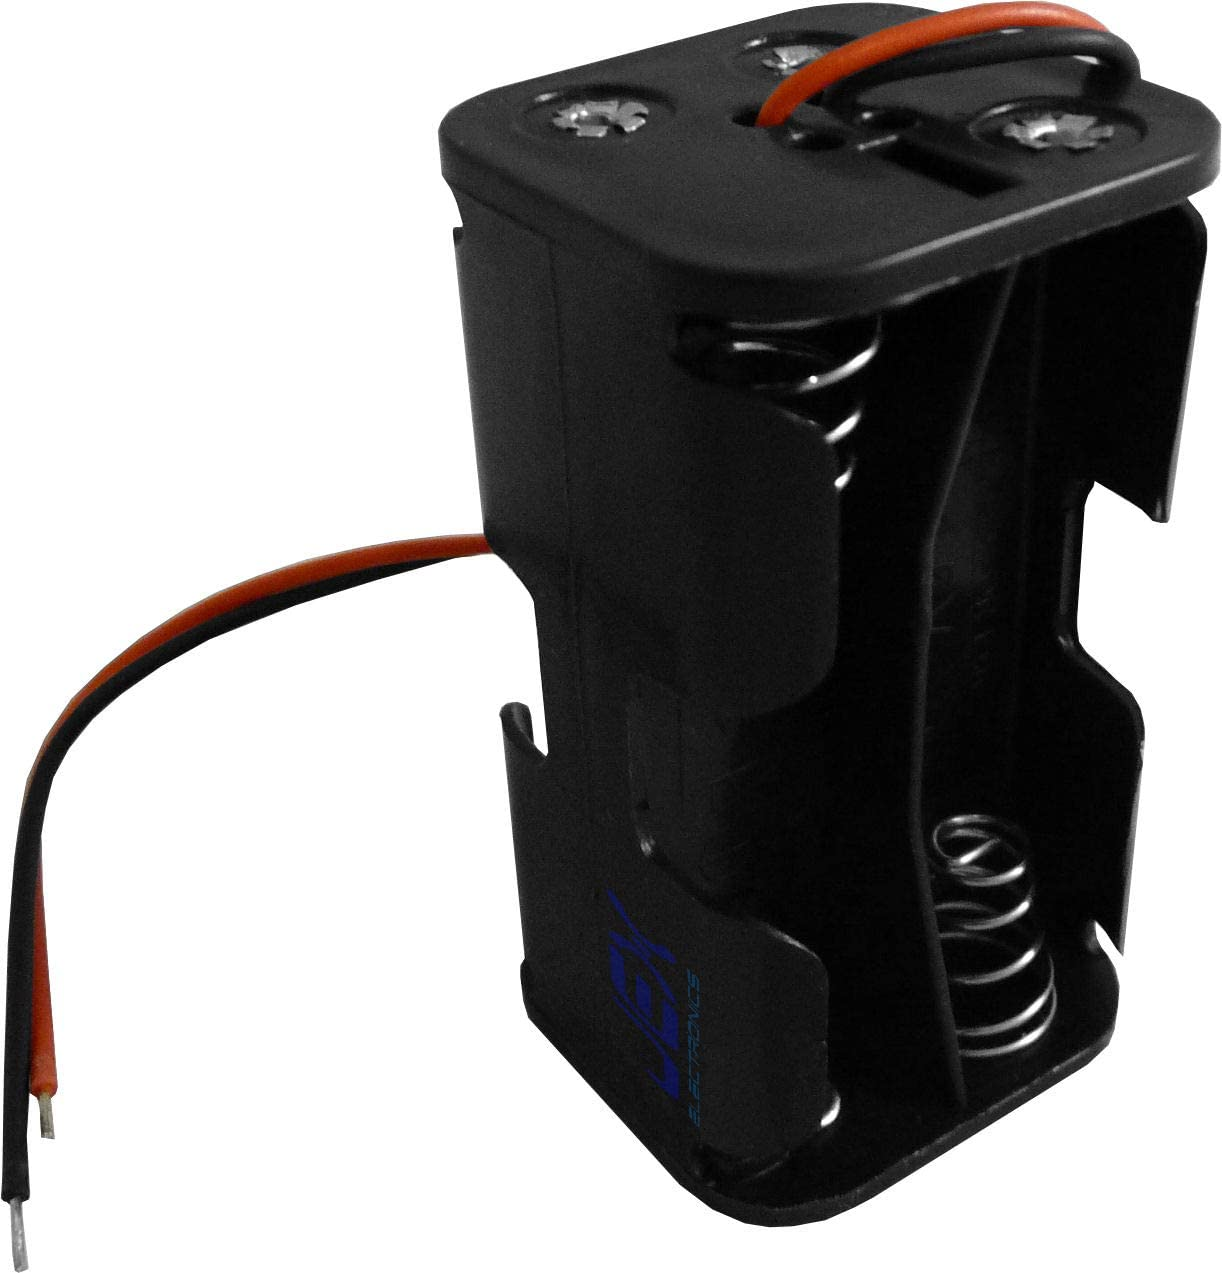 Jex Electronics Four/Quad/4X AA DIY Battery Holder Case Box Base 6V Volt PCB Mount with Bare Wire Ends